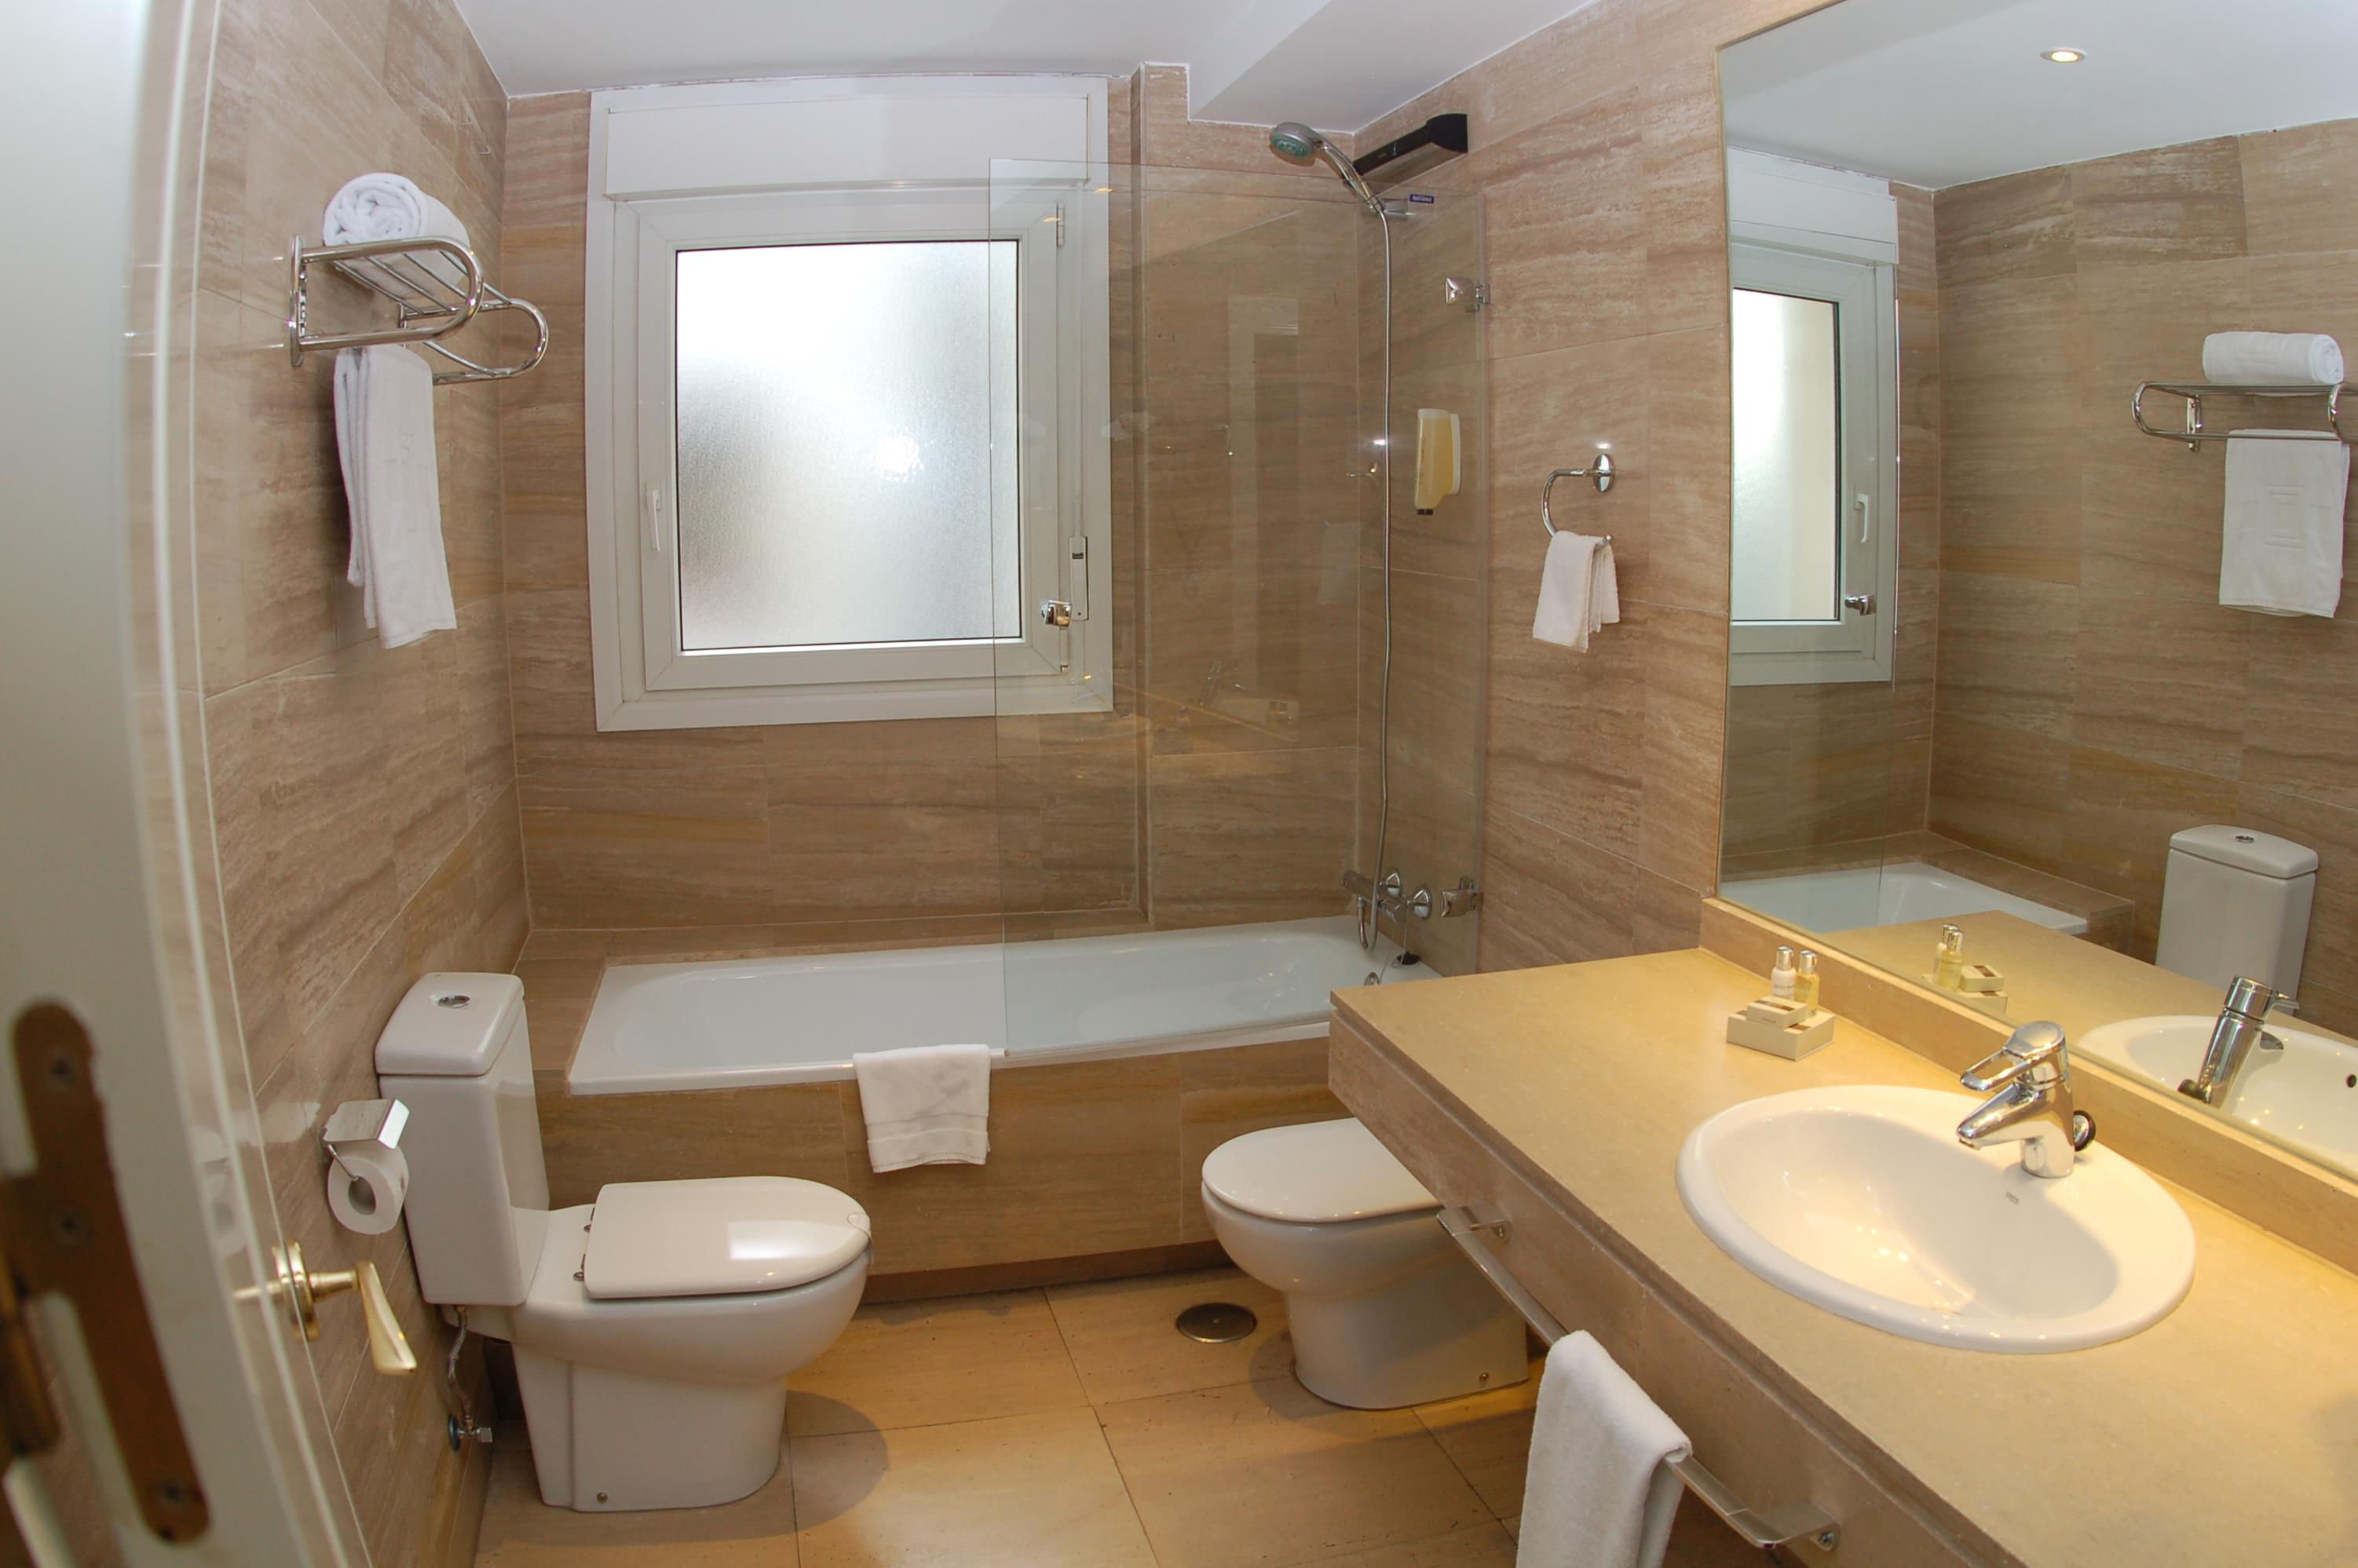 Luxury suites madrid madrid hotels spain small for Luxury bathroom ideas uk